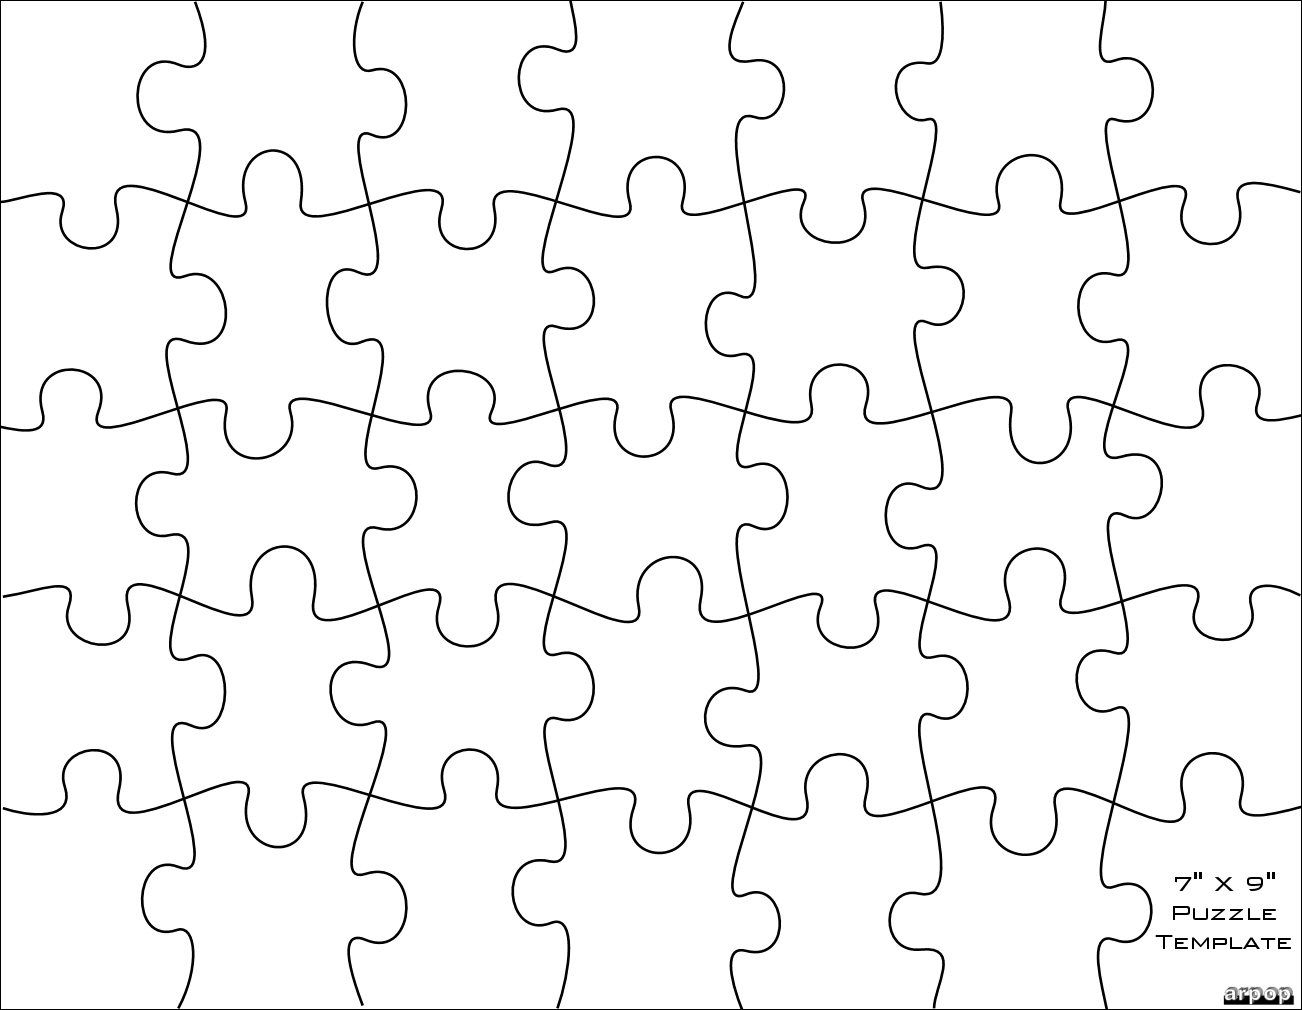 Free Scroll Saw Patternsarpop: Jigsaw Puzzle Templates | School - Printable Jigsaw Puzzle Template